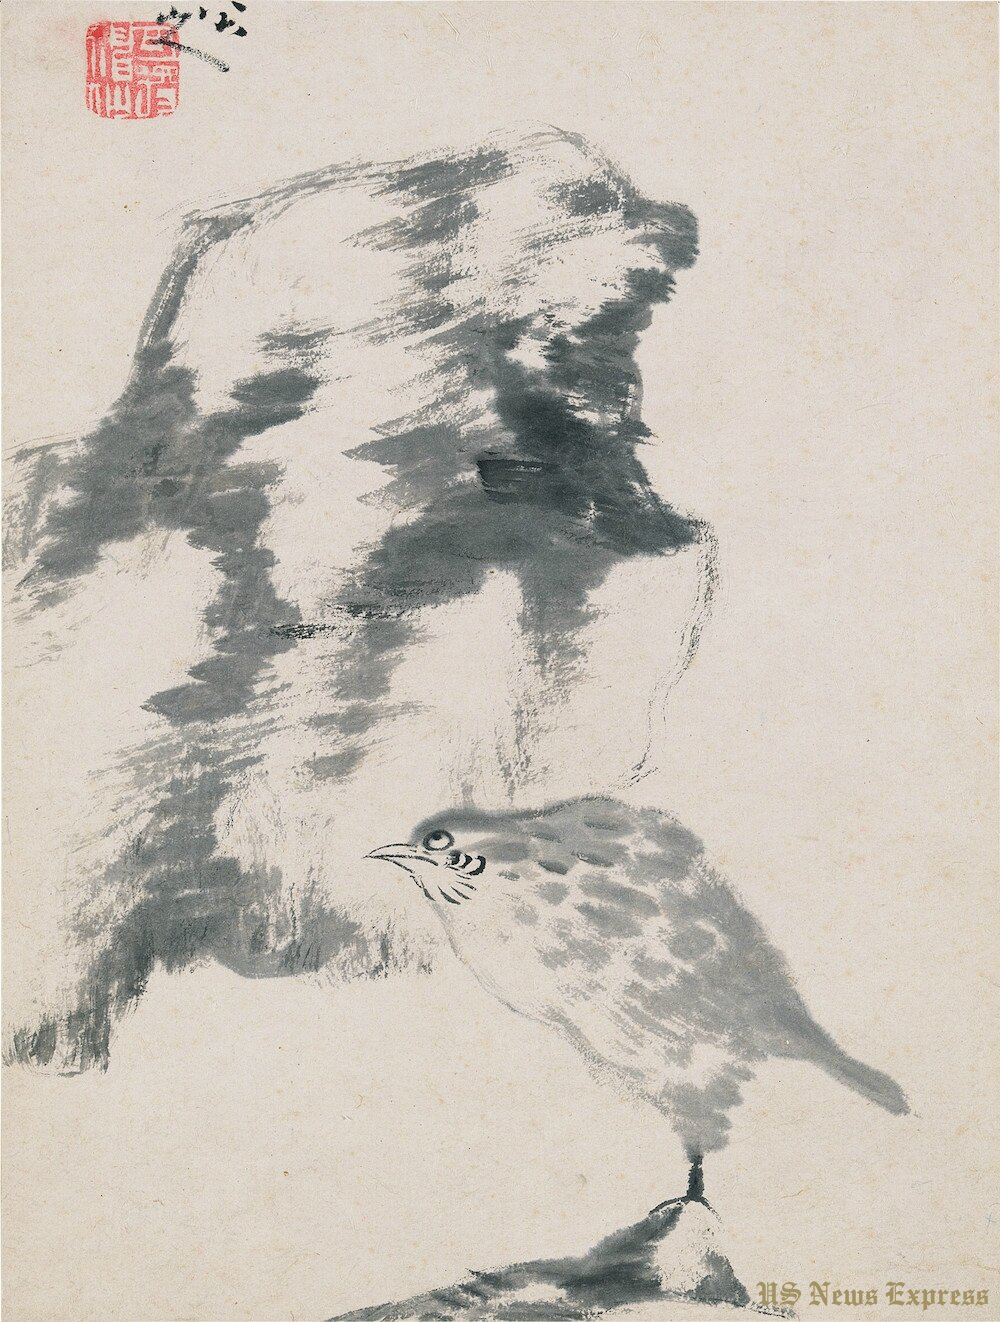 17th-century Chinese paintings from the Tsao Family Collection on view at LACMA